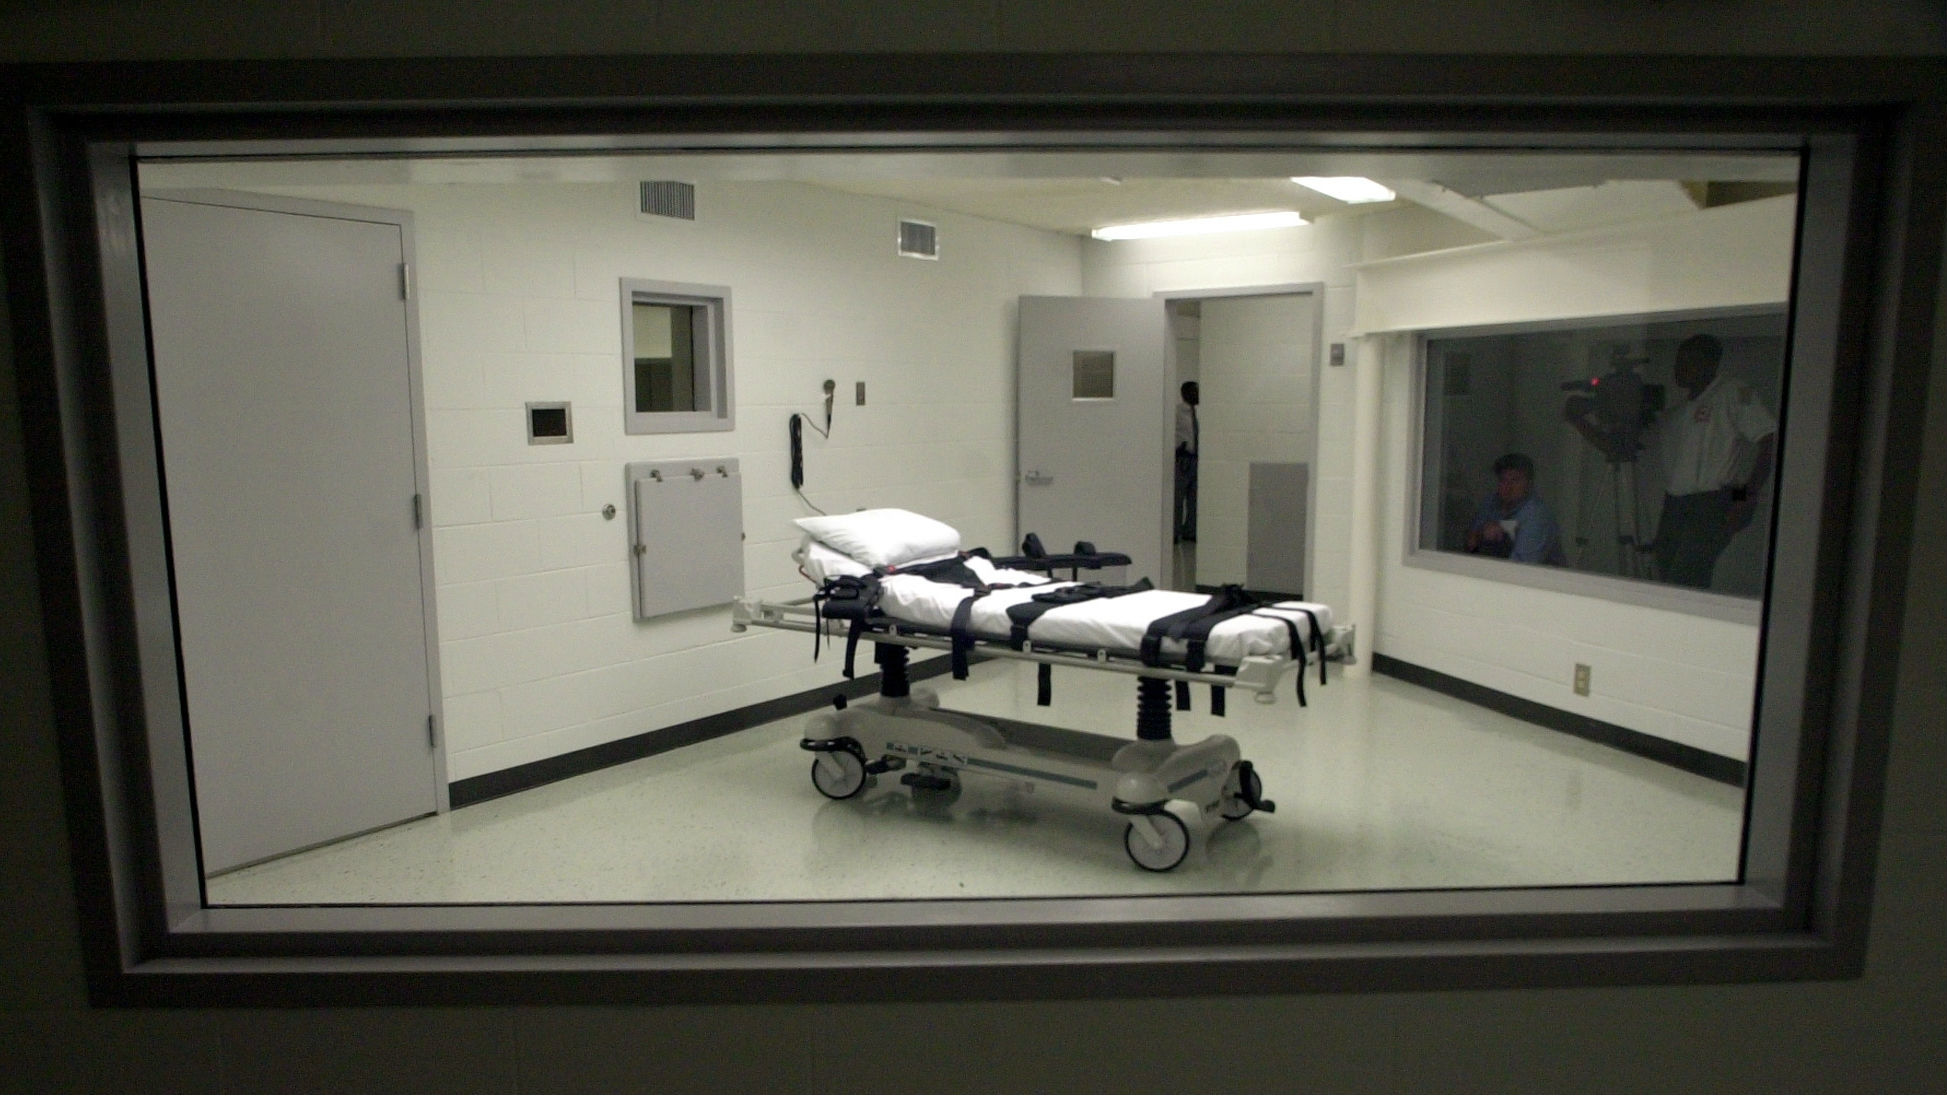 This Oct. 7, 2002 file photo shows Alabama's lethal injection chamber at Holman Correctional Facility in Atmore, Ala. Democratic state Sen. Hank Sanders has unsuccessfully introduced bills year after year to end capital punishment in his Southern state. The 74-year-old opponent of the death penalty tells The Associated Press that his proposals have no chance in a state that clings to capital punishment but he believes it's morally right to end it.